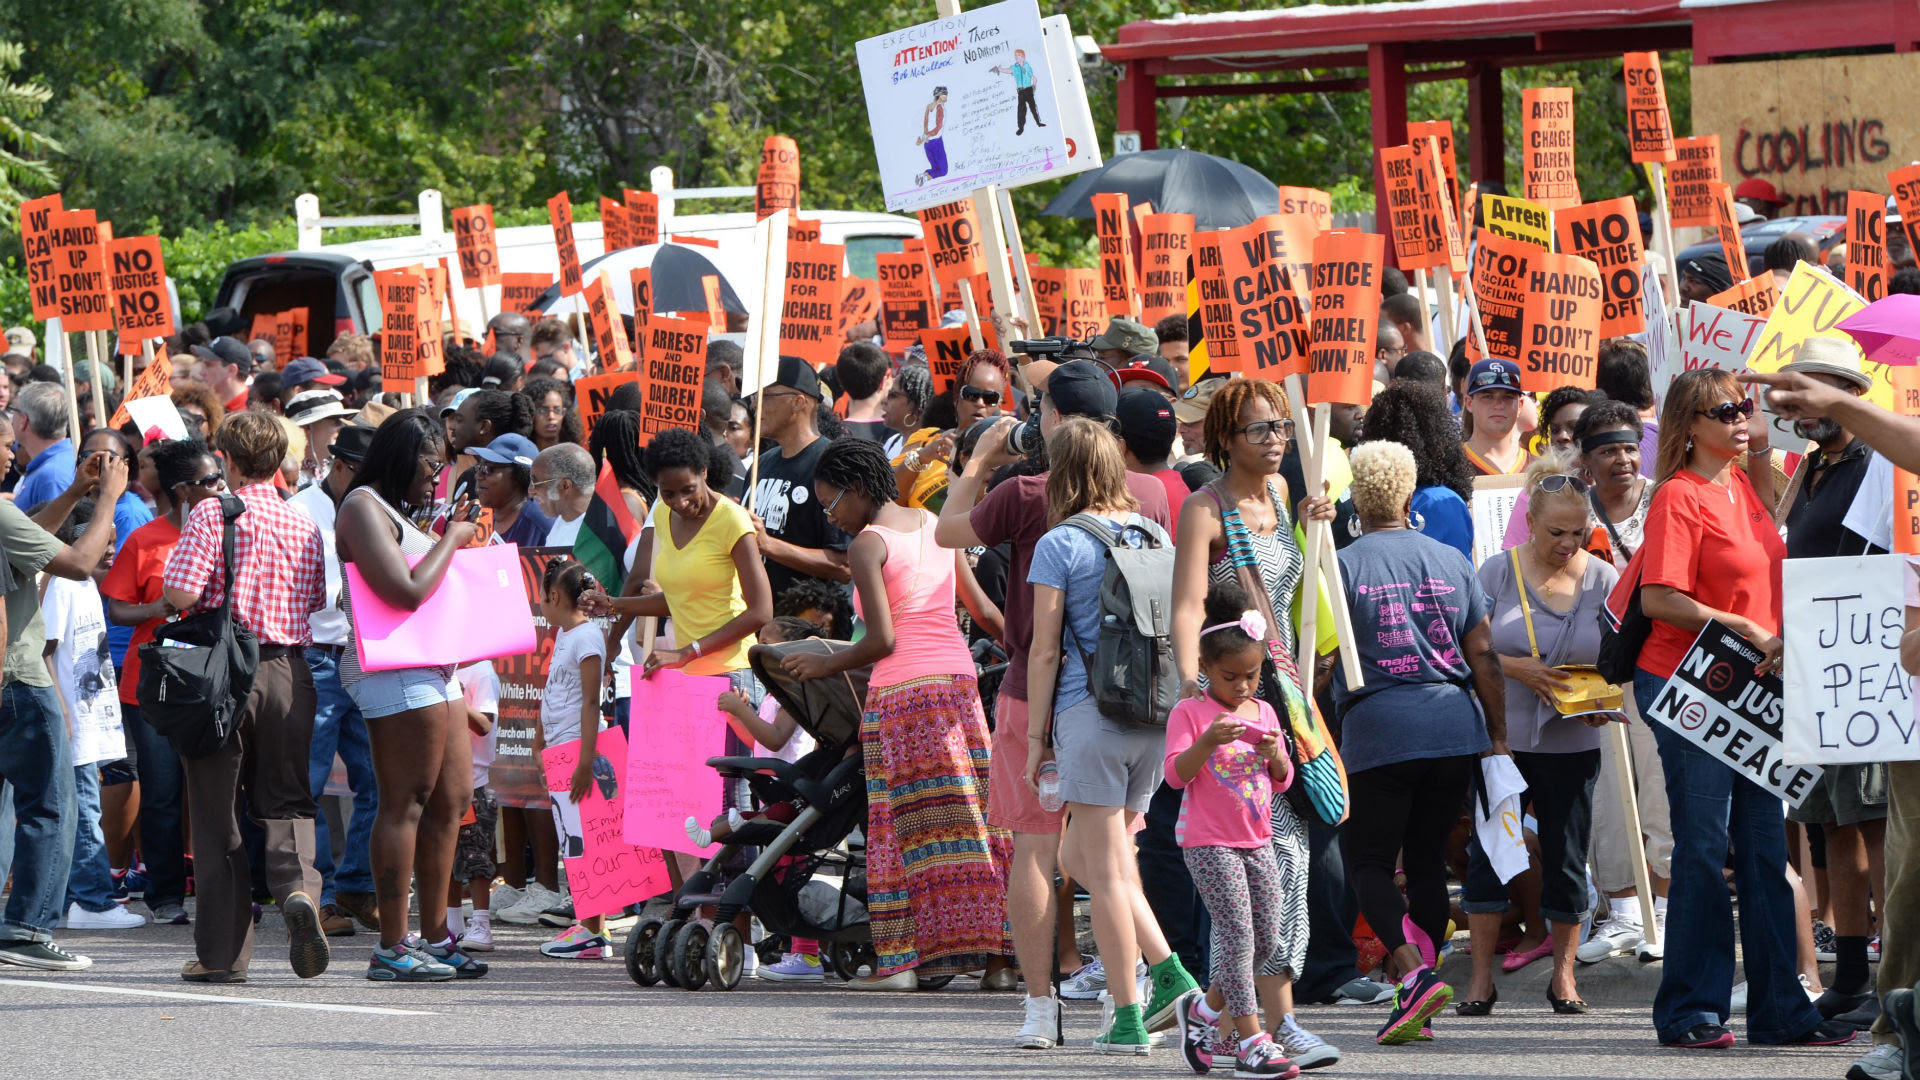 Protesters March in D.C. Streets for Mike Brown